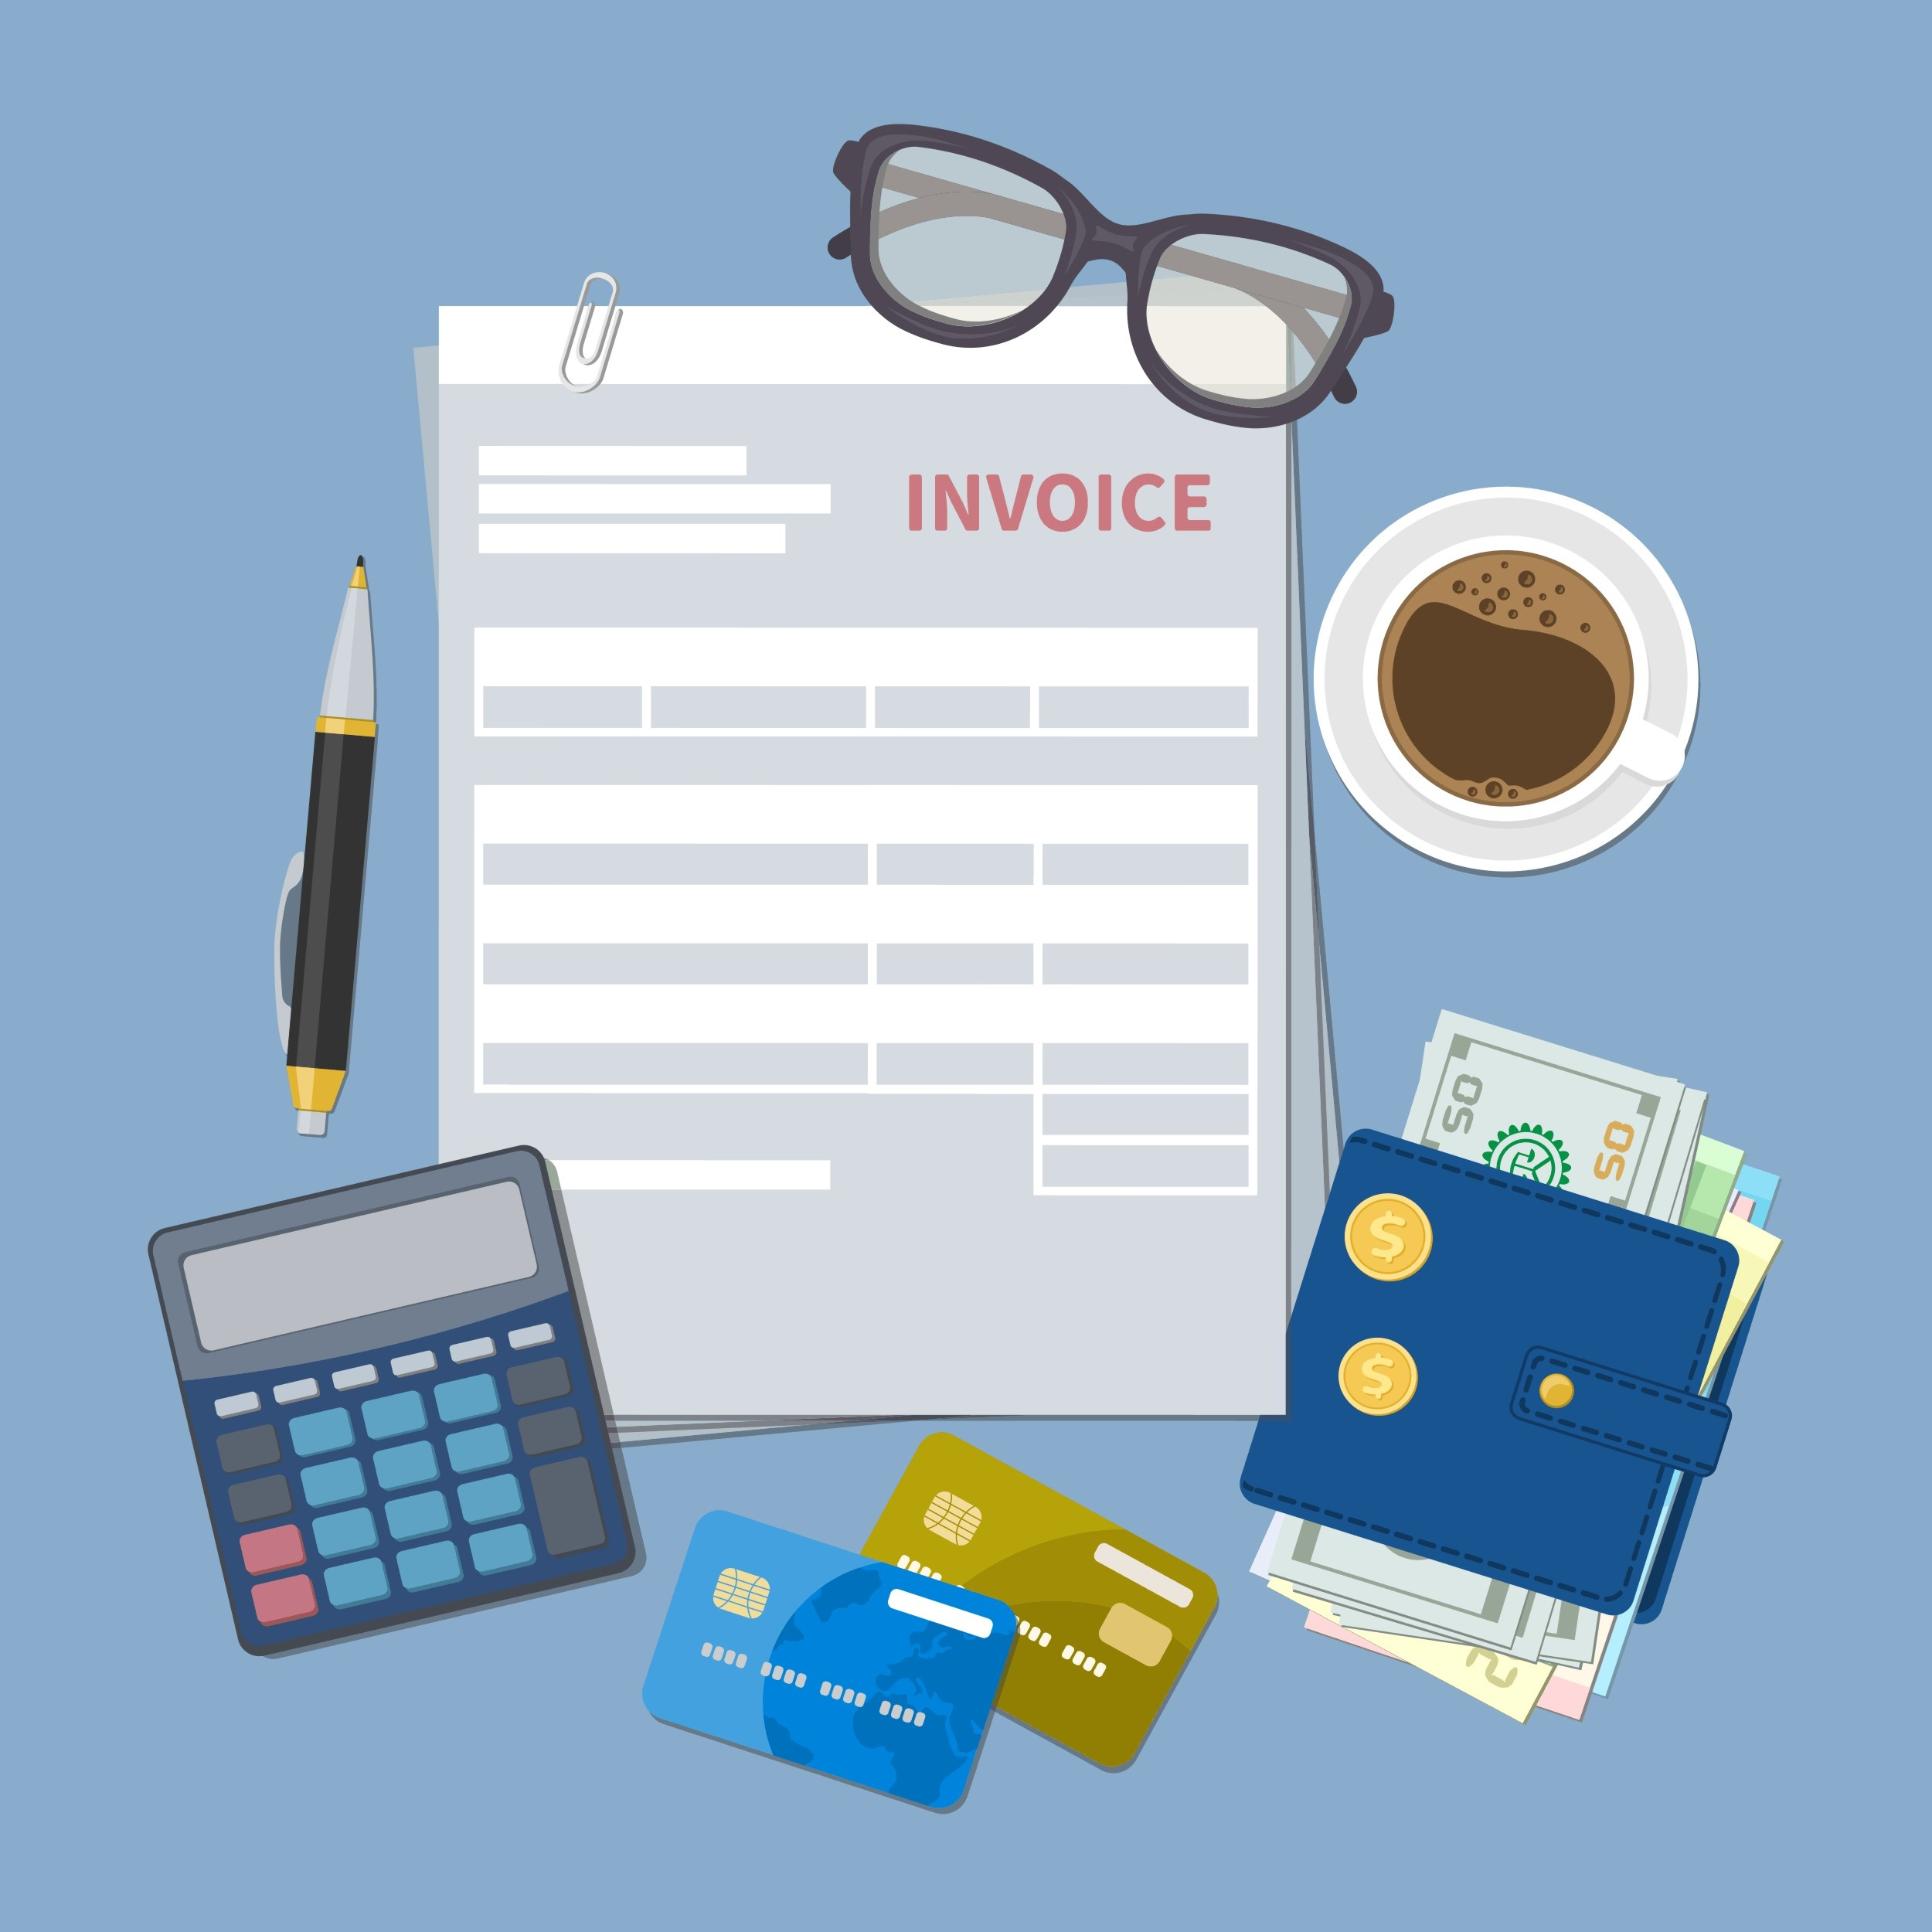 How do I pay for travel management services?